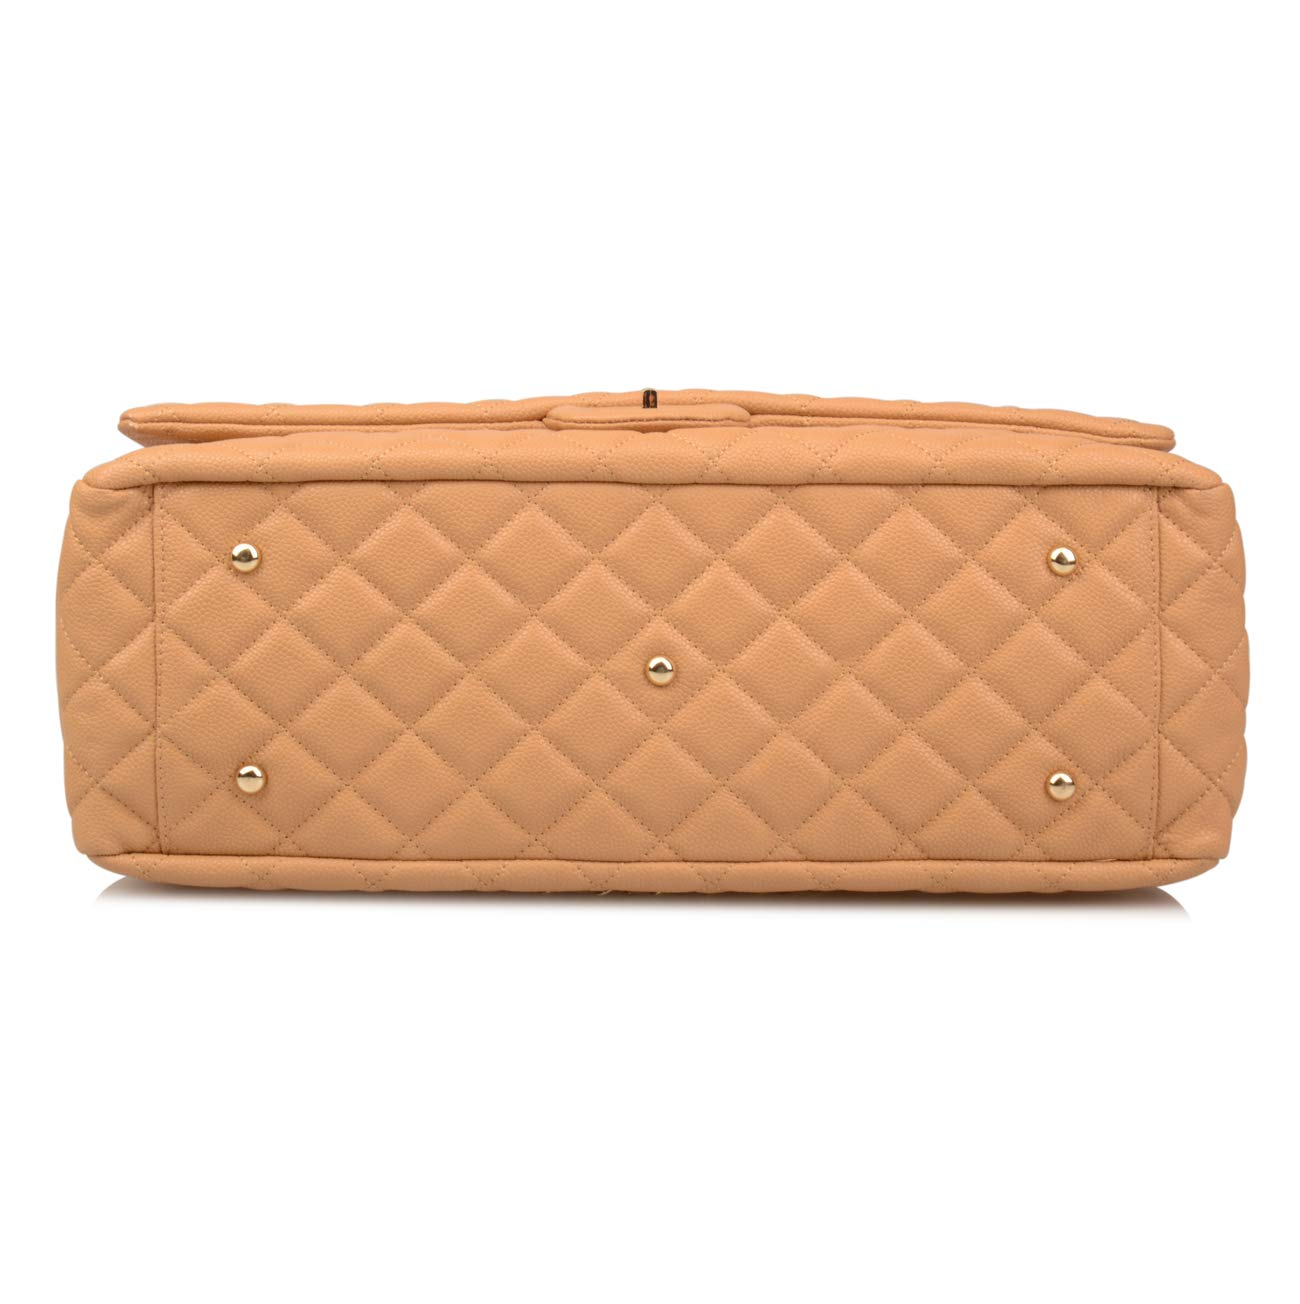 Ainifeel Women's Genuine Leather Oversize Quilted Flap Handbag Large Travelling Tote Bag Luggage Holdall (Oversize, Apricot (gold hardware)) by Ainifeel Quilted&Chain Strap Collection (Image #5)